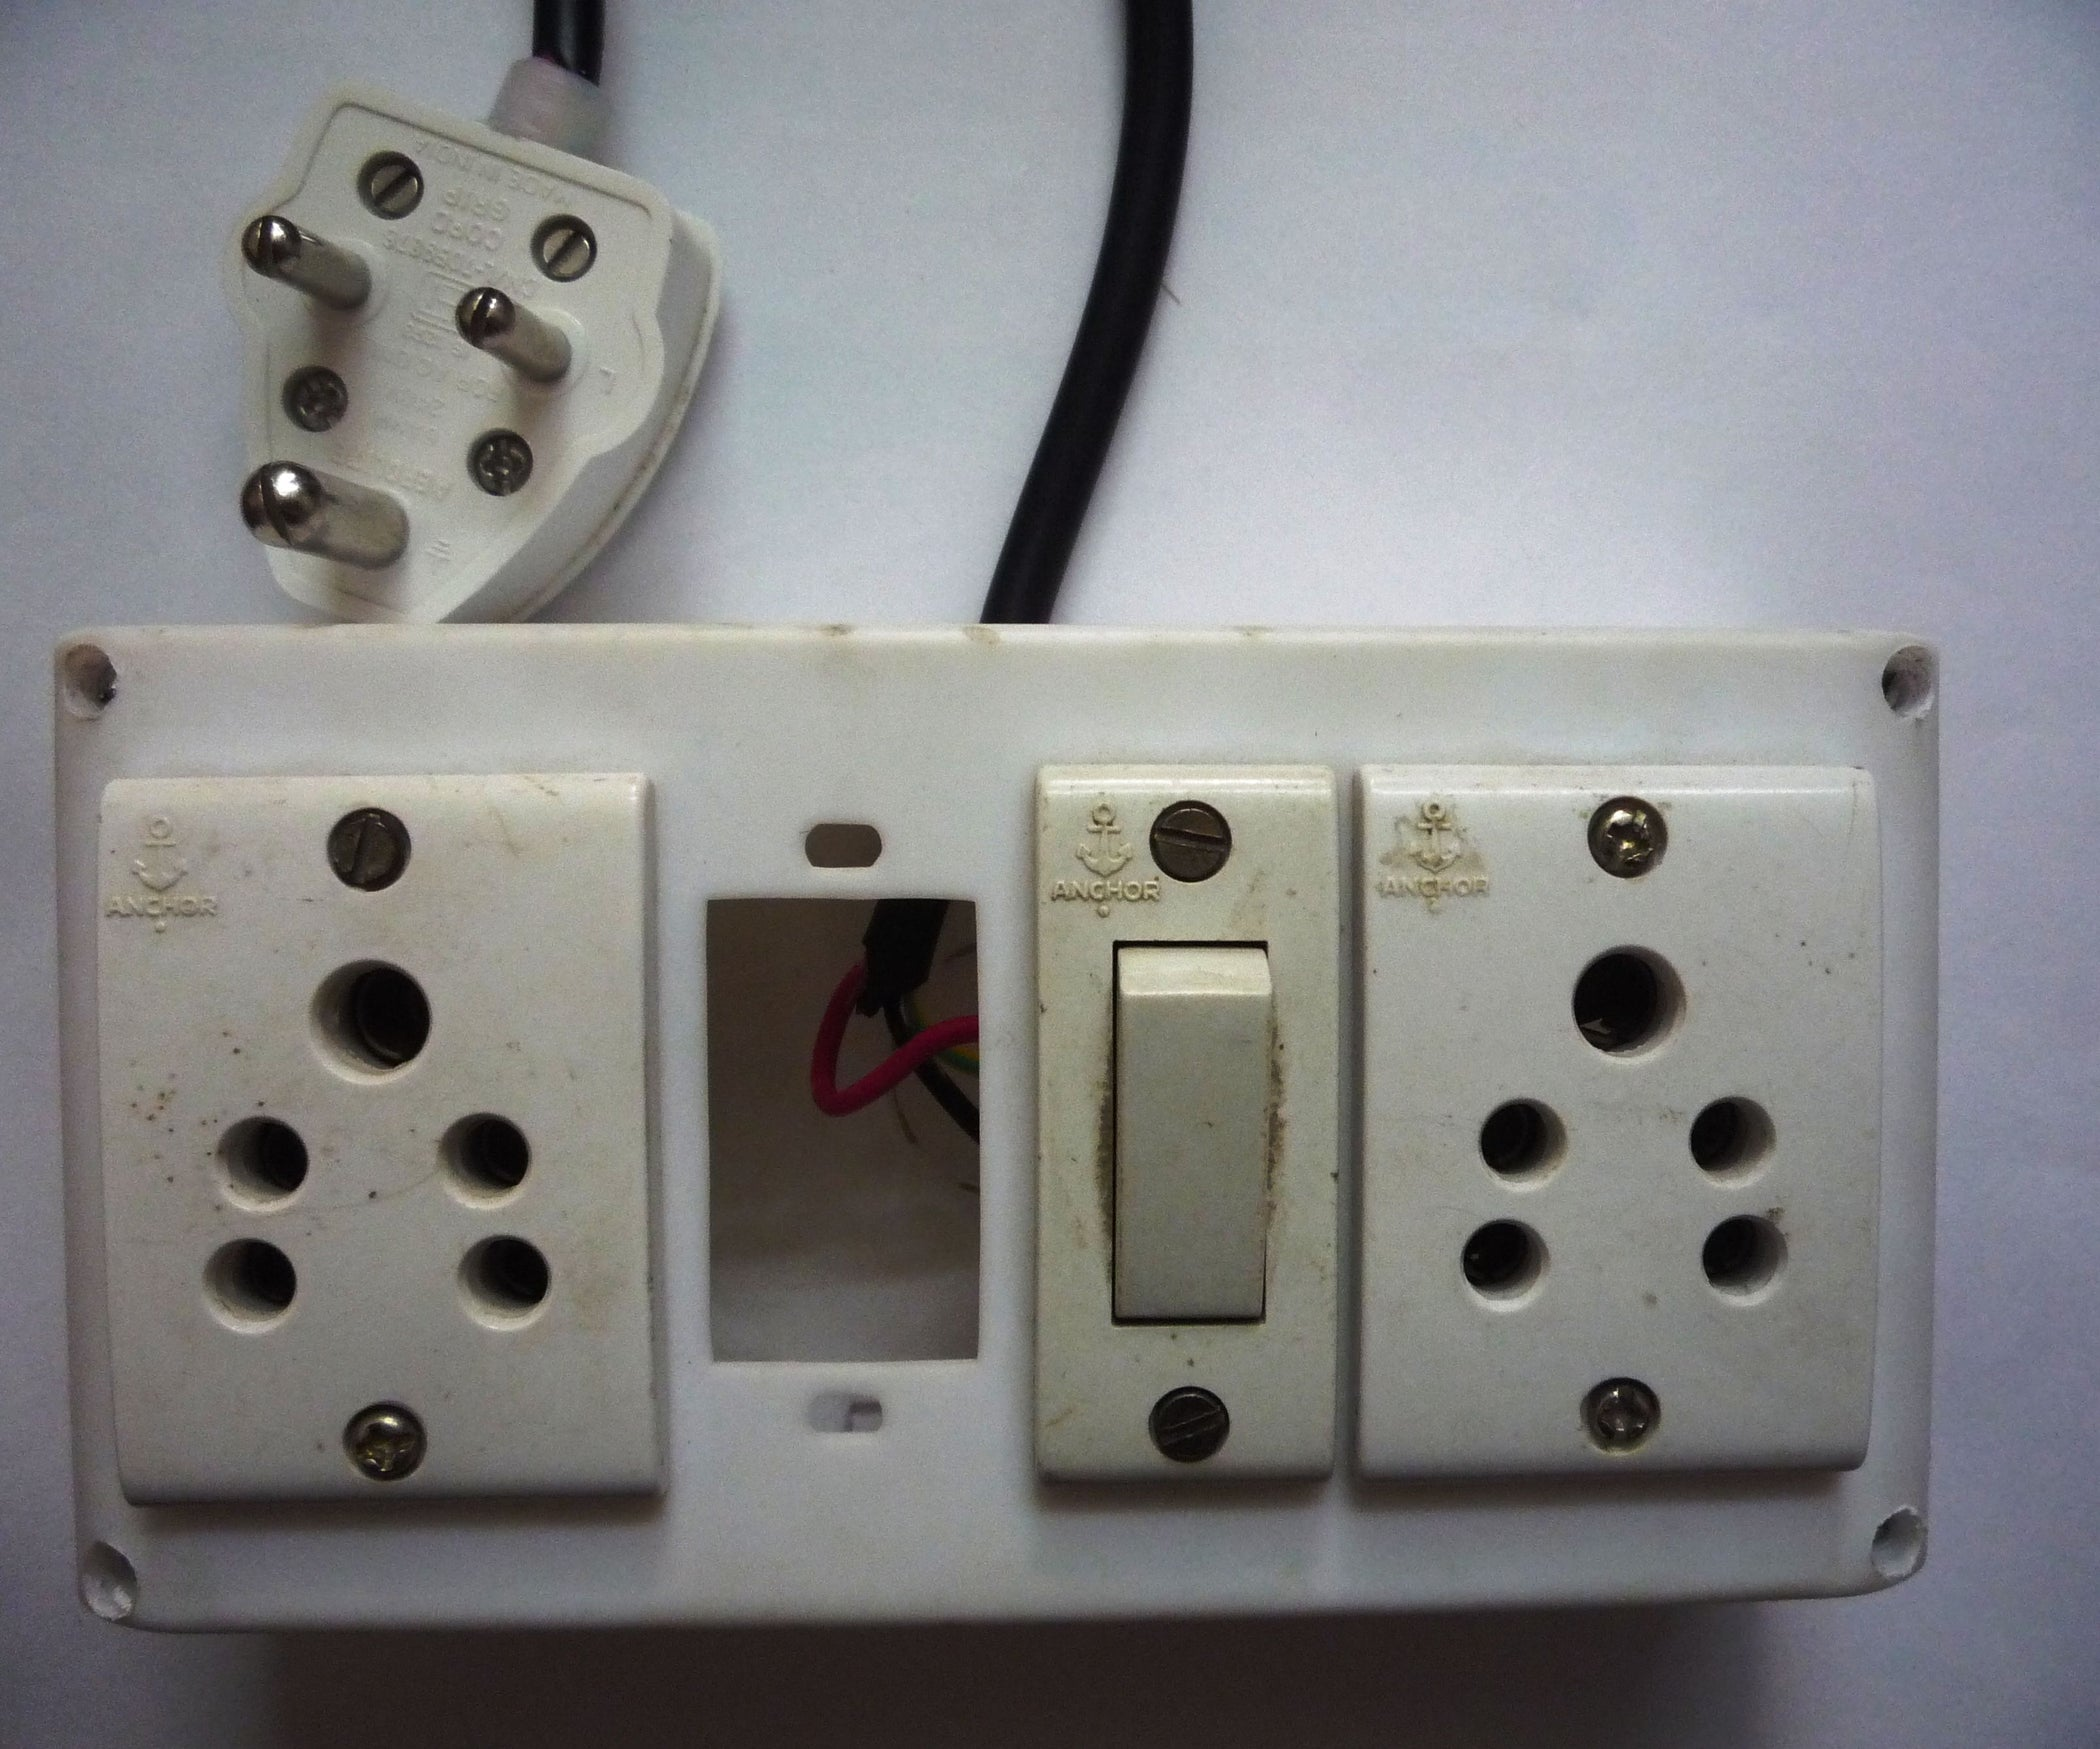 Make Your Own Extension Board 13 Steps With Pictures Blank Home Theater Wiring